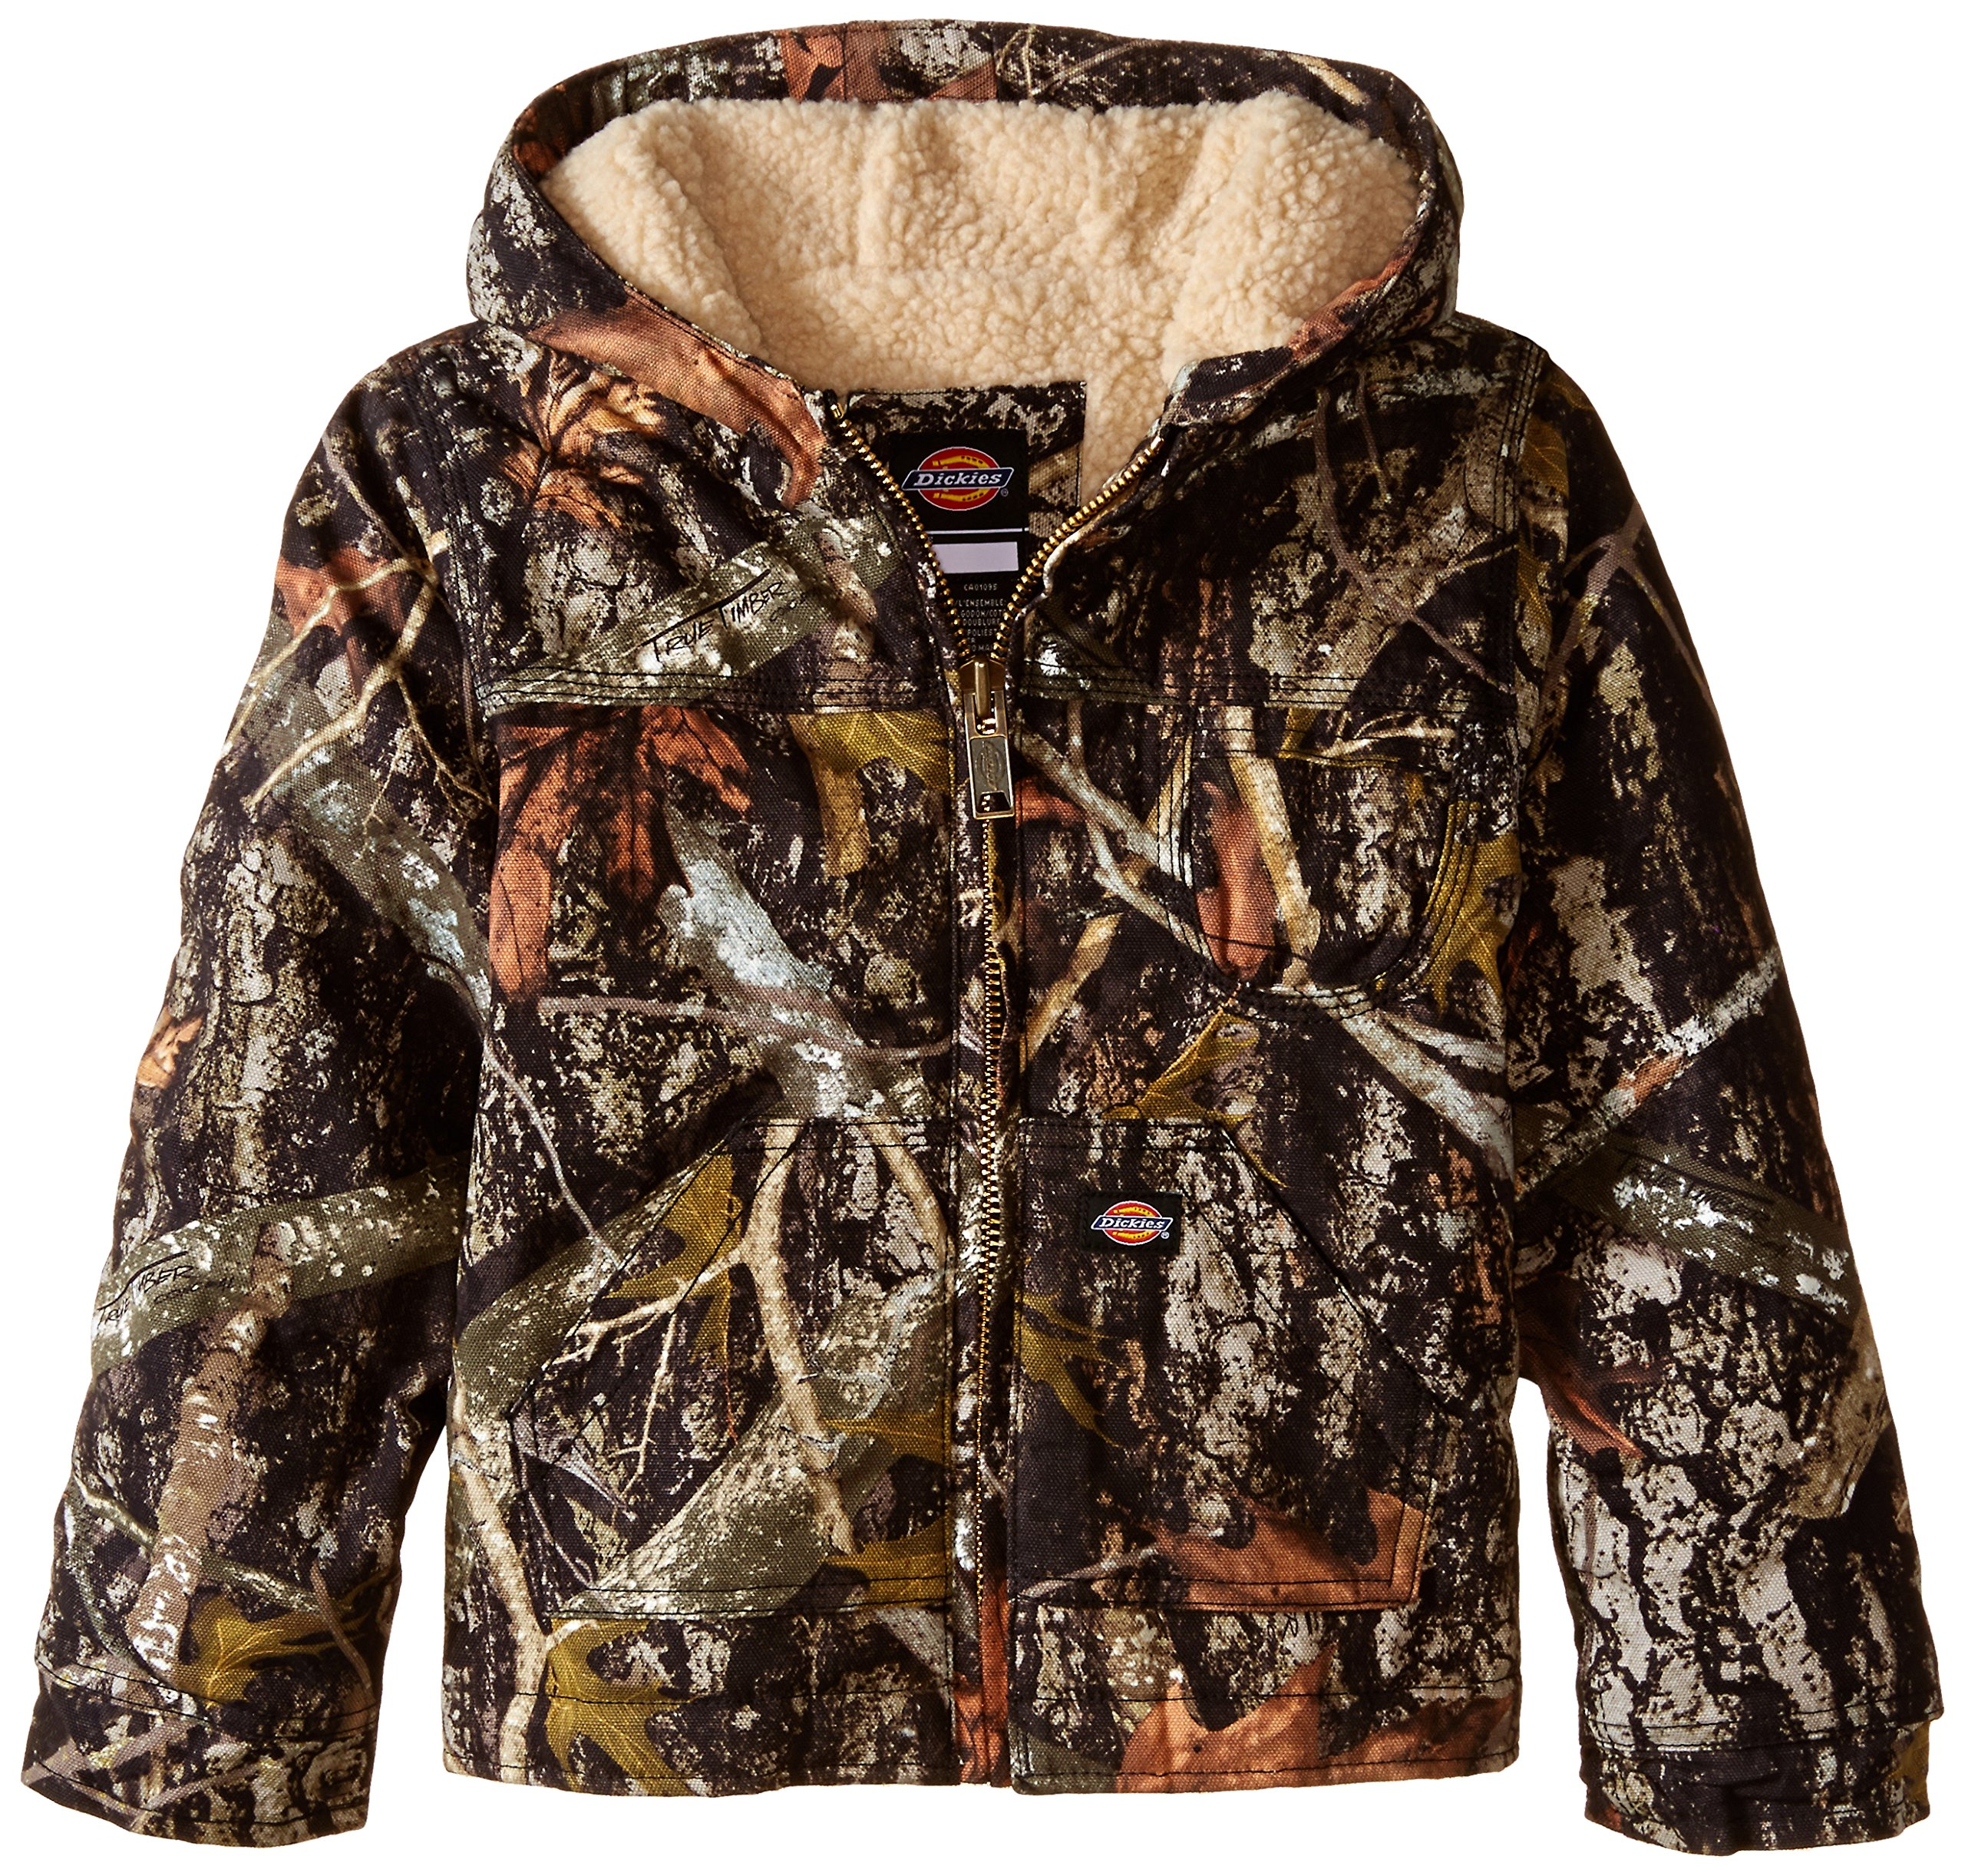 Dickies Little Boys' Sherpa Lined Duck Jacket, Camo New Conceal, Large (7)